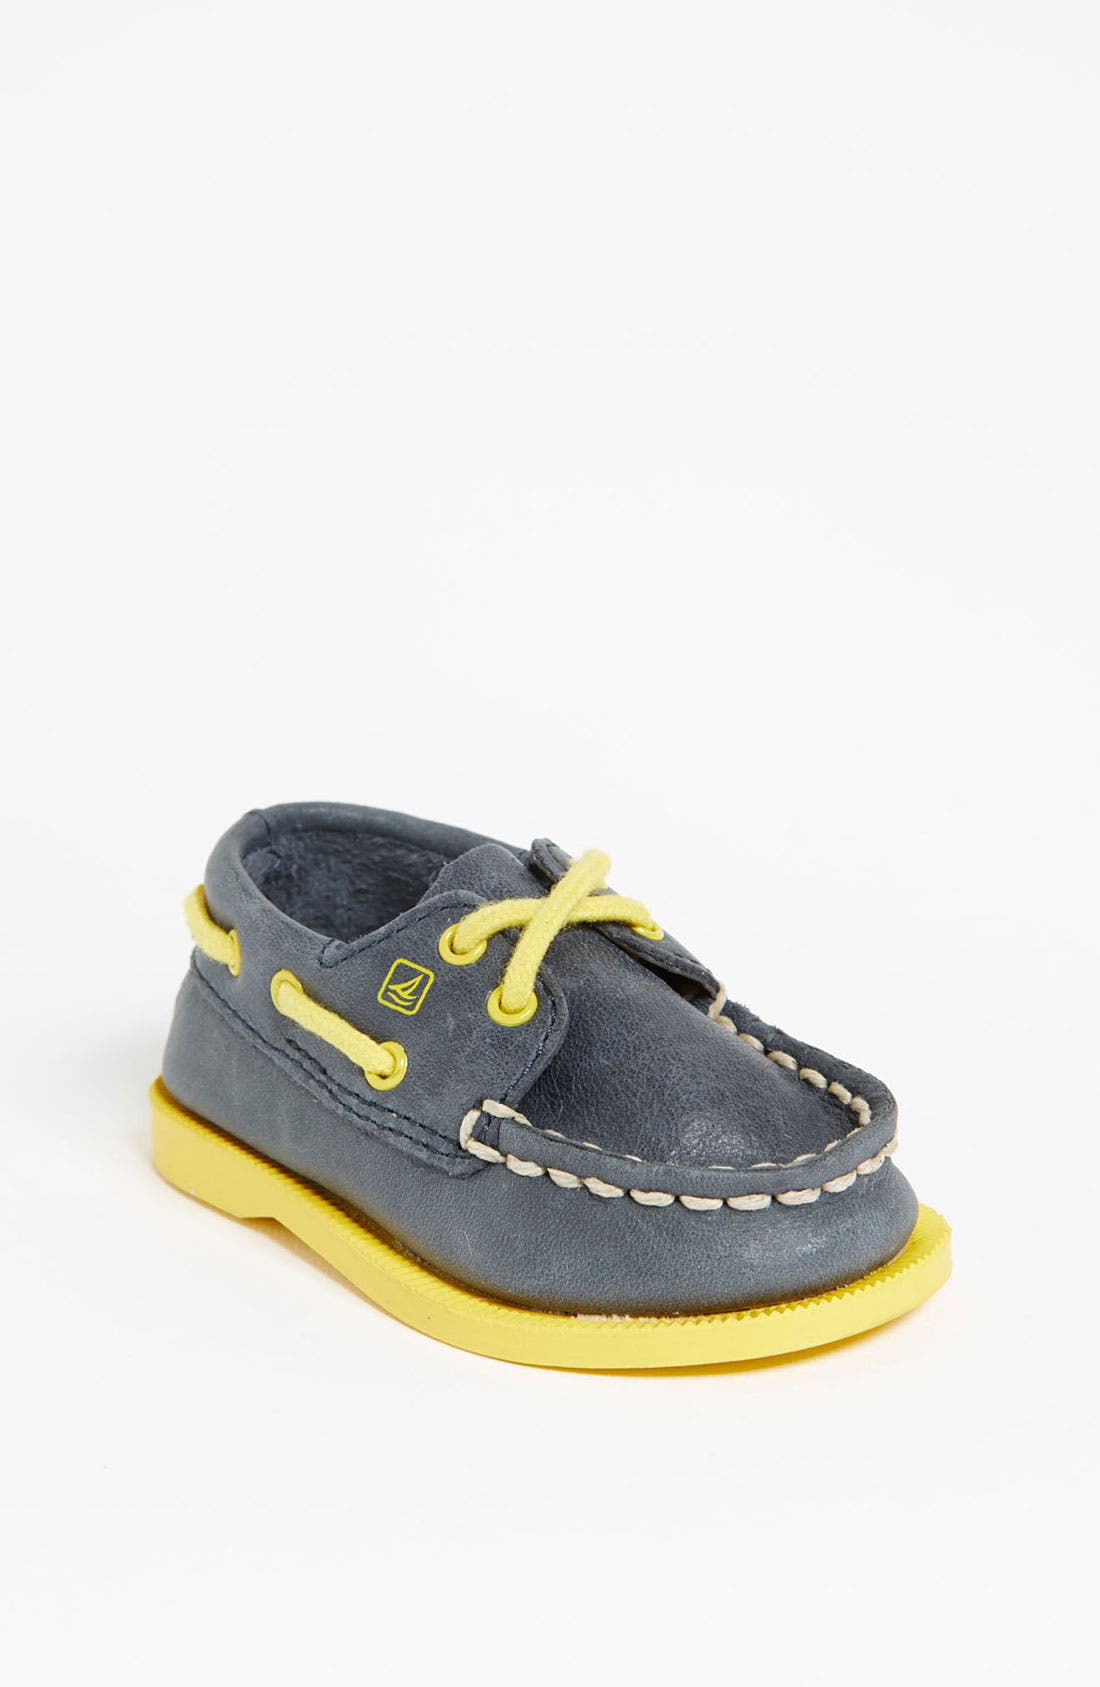 Alternate Image 1 Selected - Sperry Top-Sider® Kids 'Authentic Original' Crib Shoe (Baby)